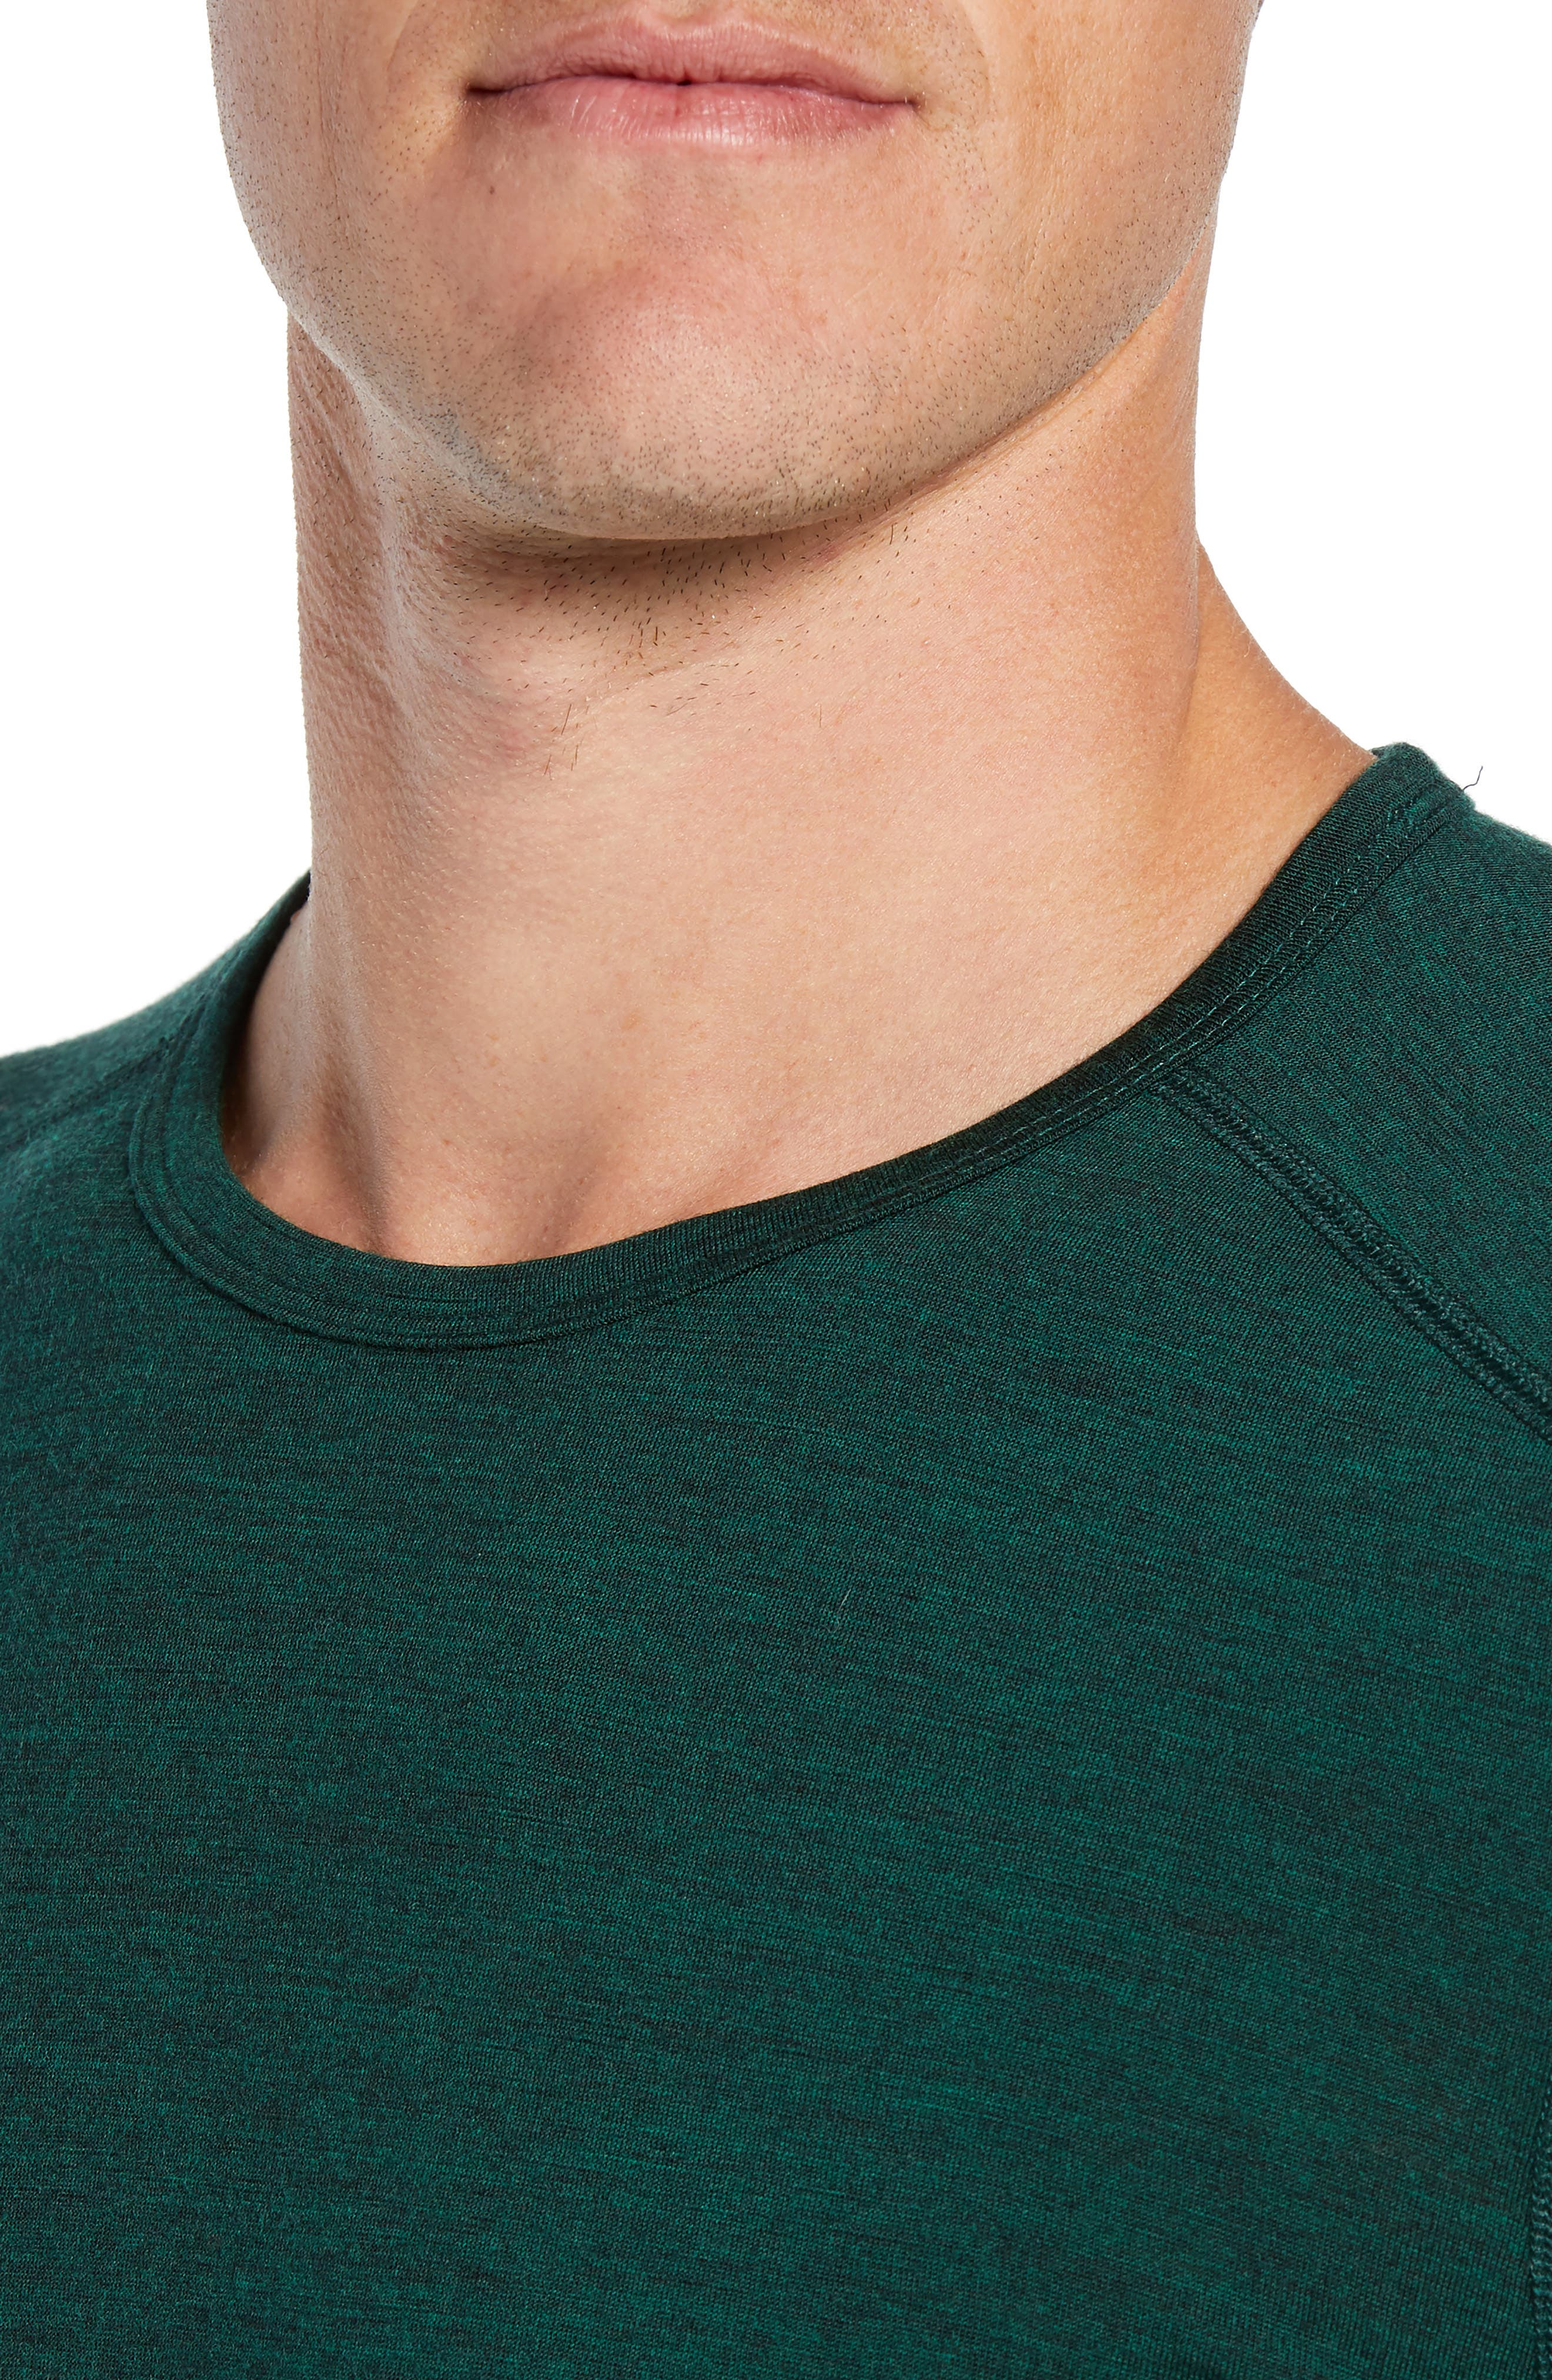 Oasis Slim Merino Wool T-Shirt,                             Alternate thumbnail 4, color,                             IMPERIAL HEATHER